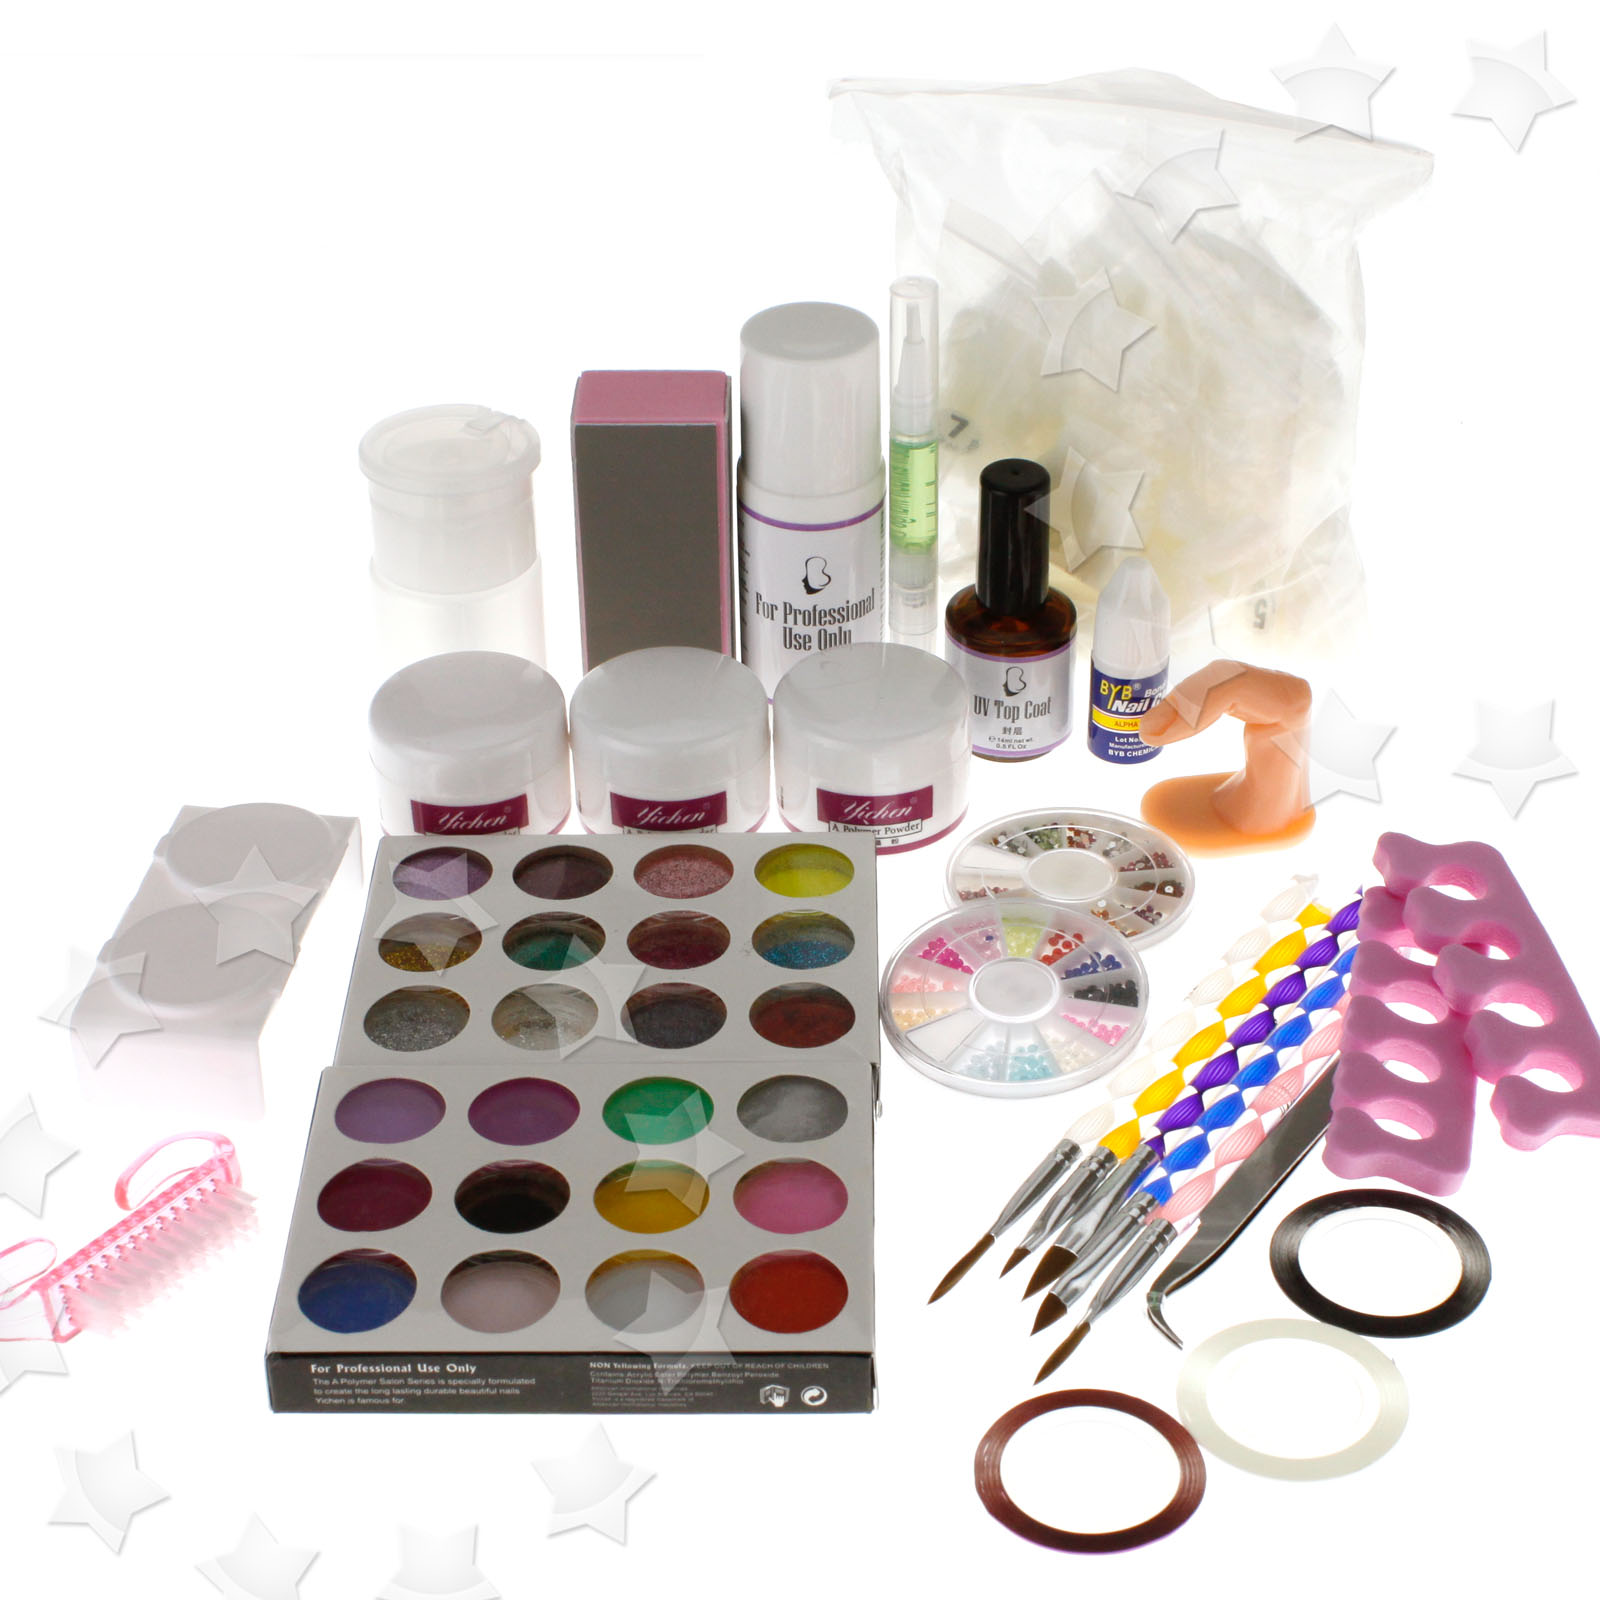 Pro nail art acrylic nail kit w powders brushes for Avon nail decoration brush